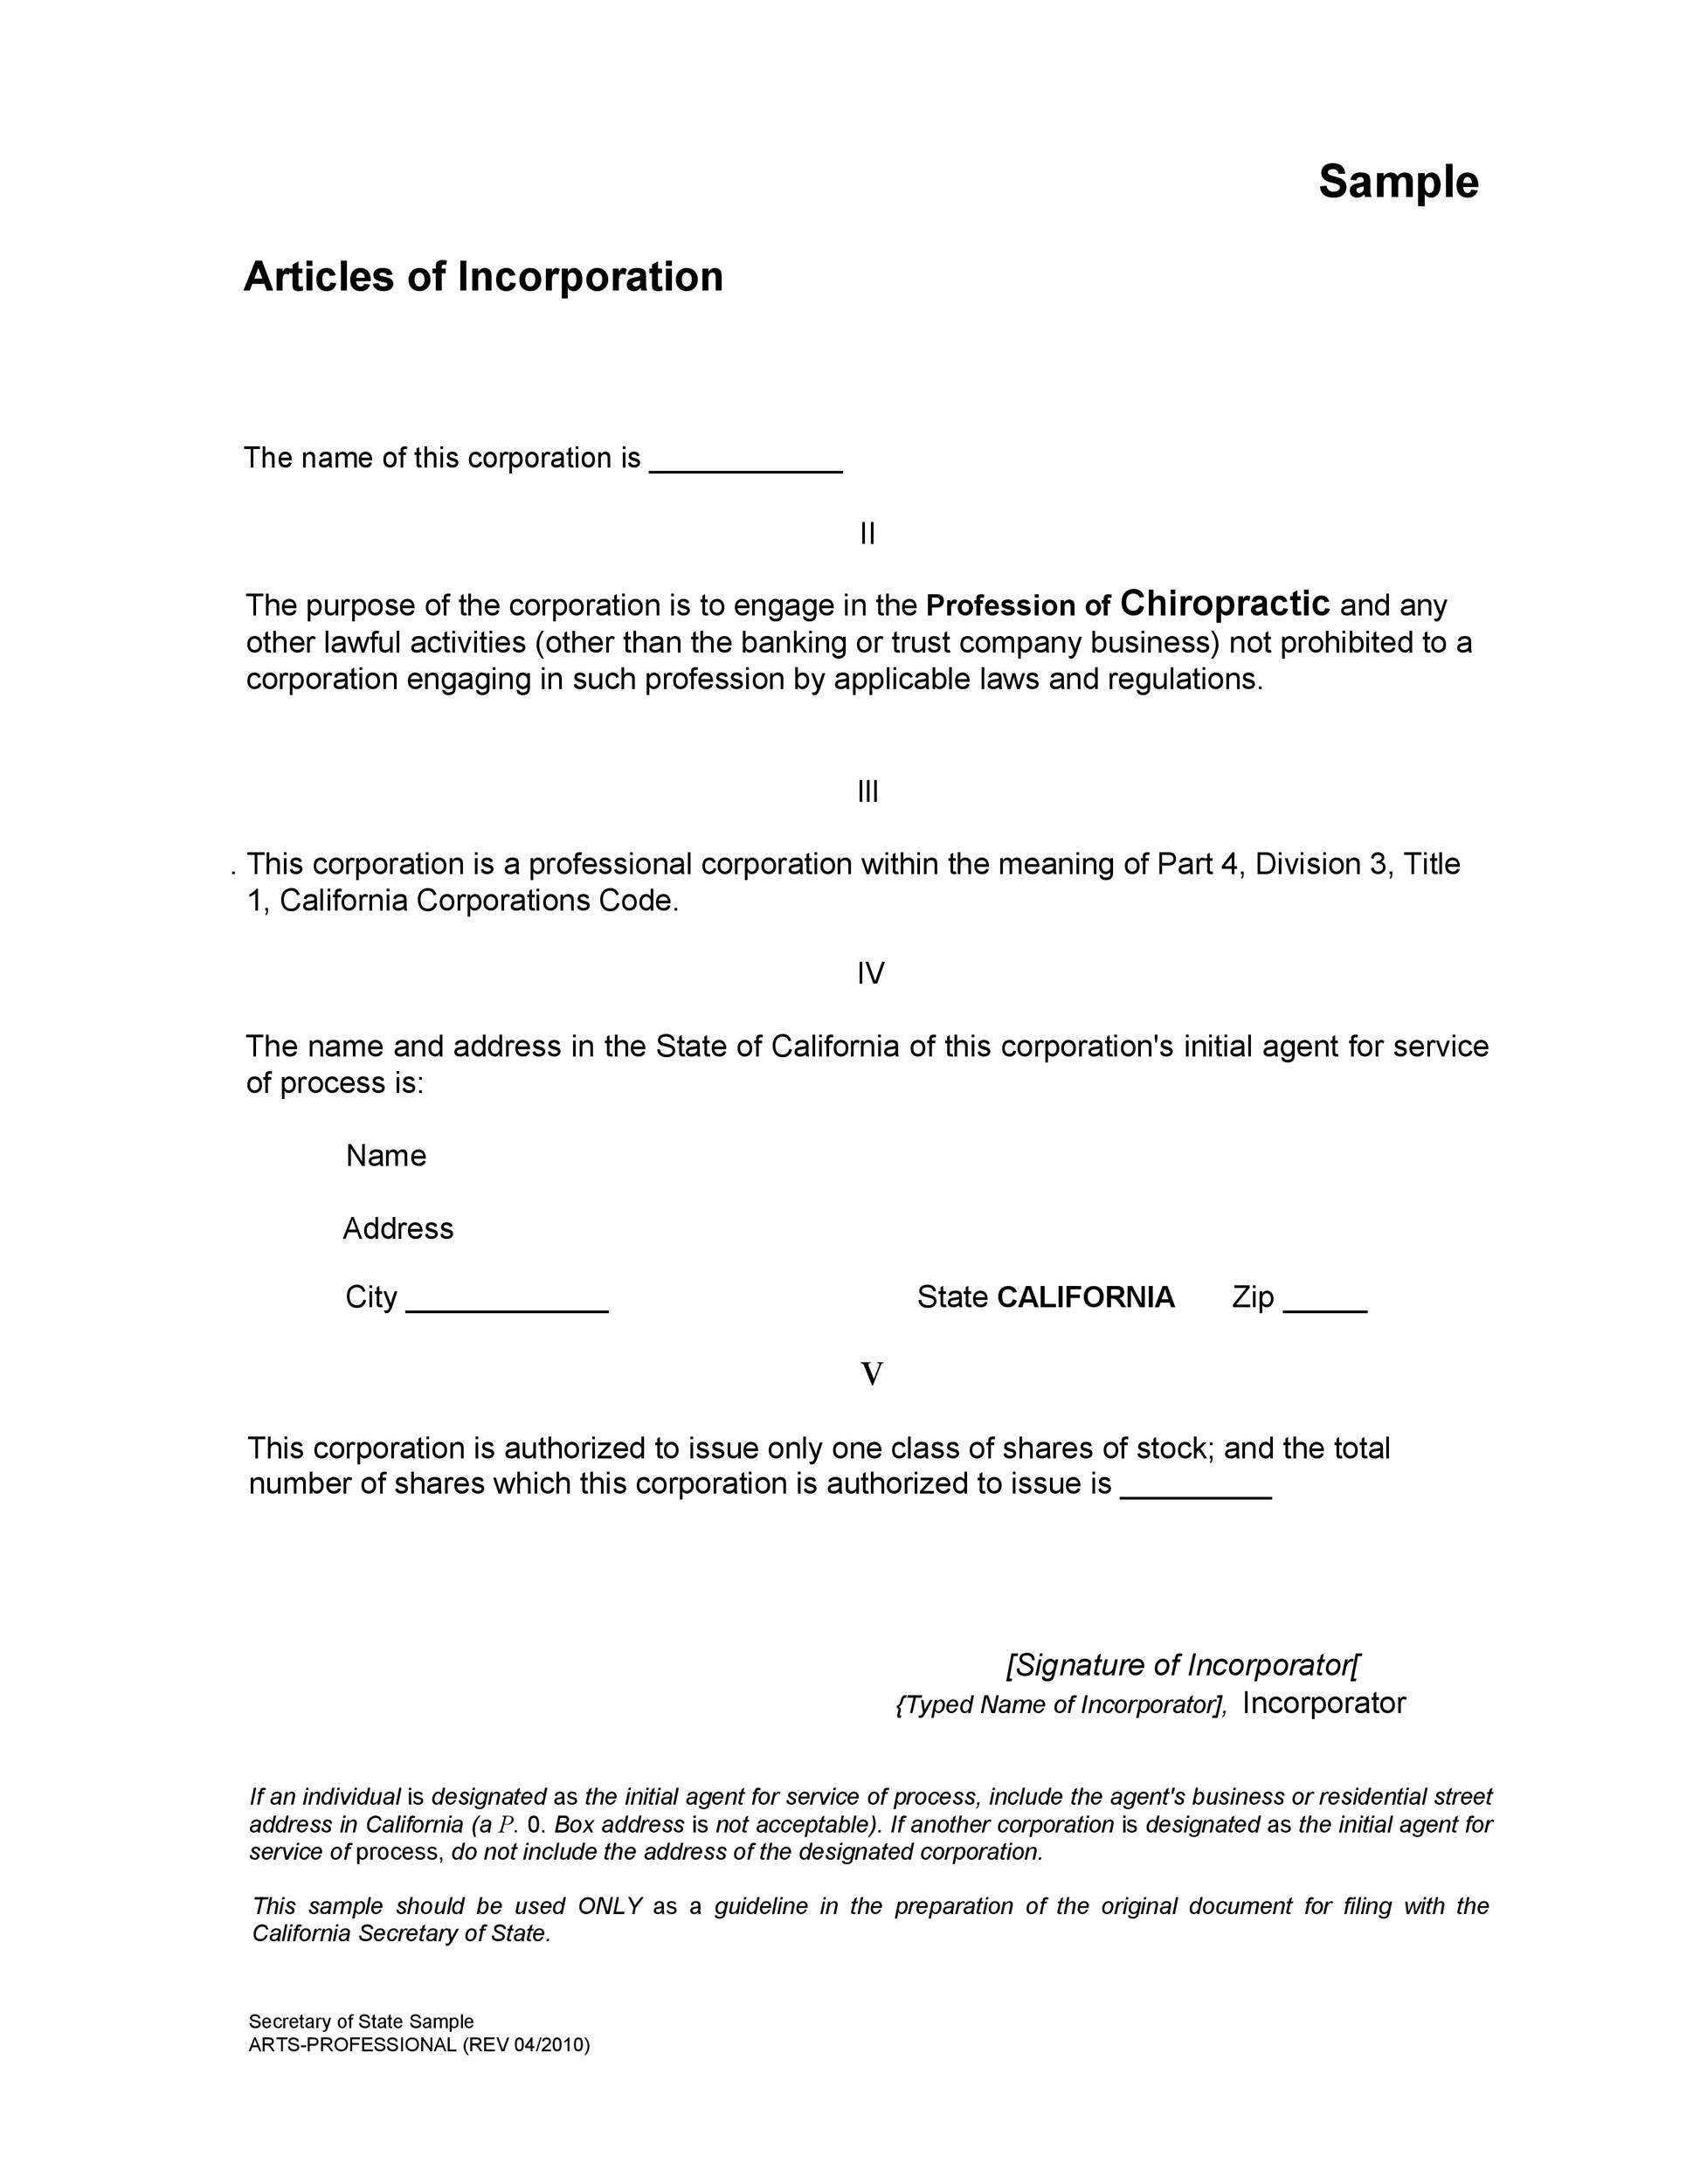 Articles of incorporation florida template